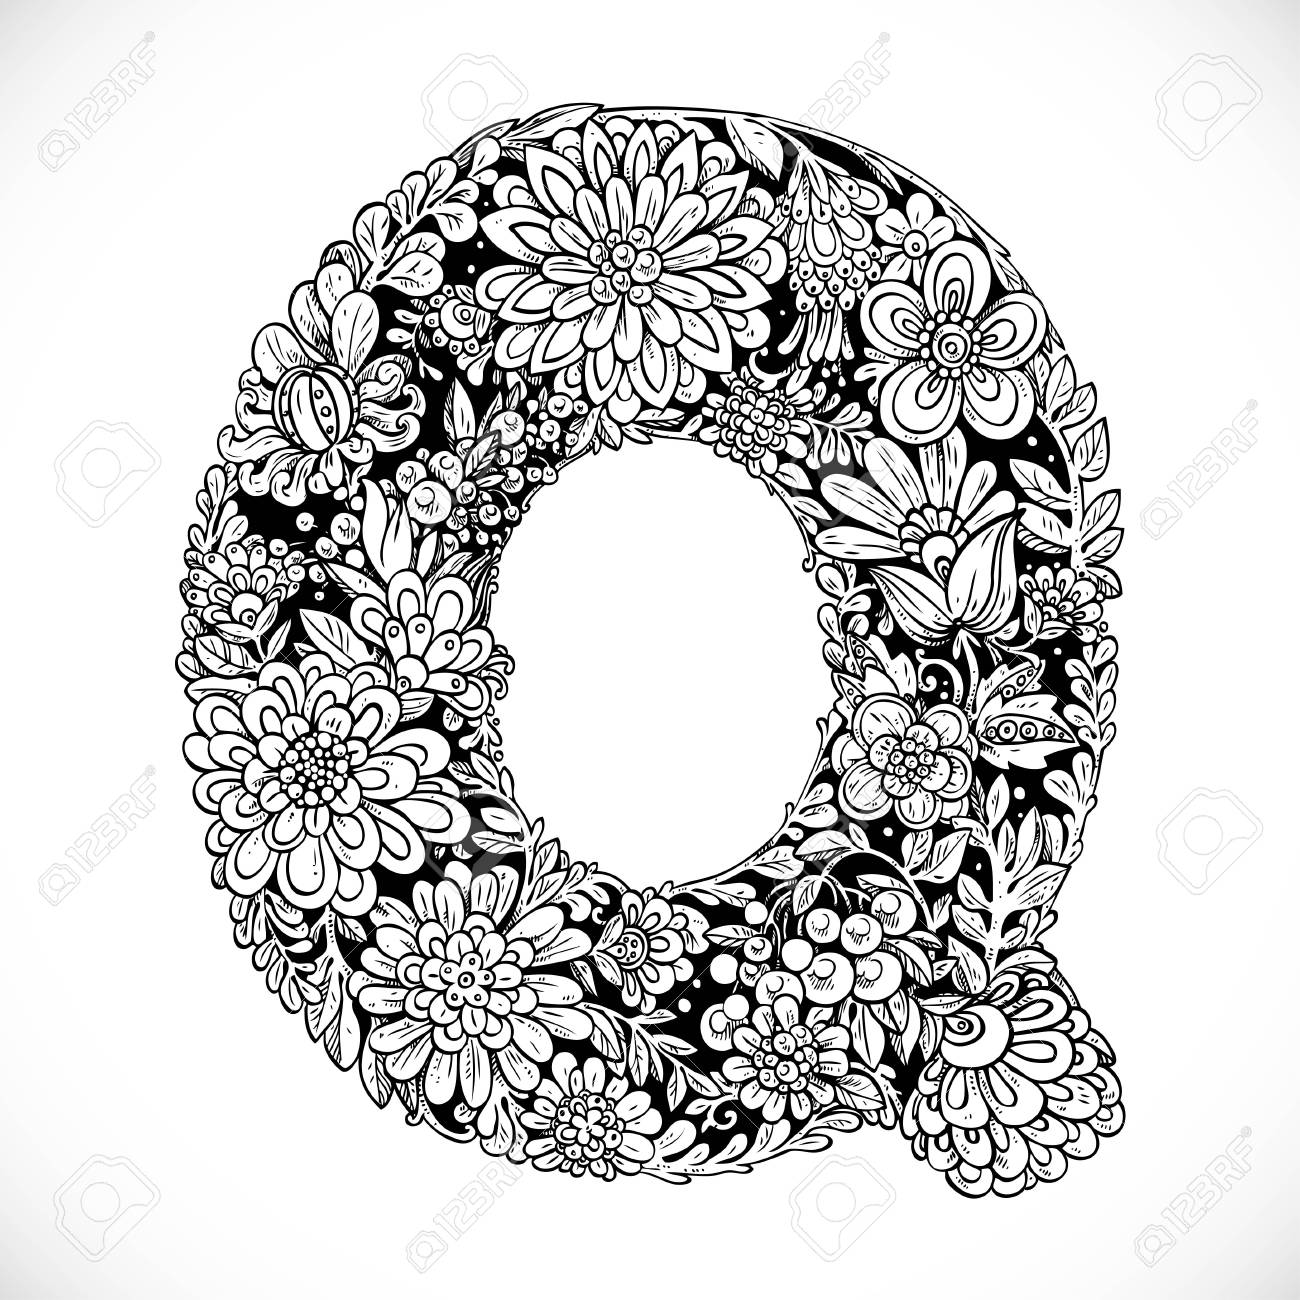 Doodles Font From Ornamental Flowers Letter Q Black And White